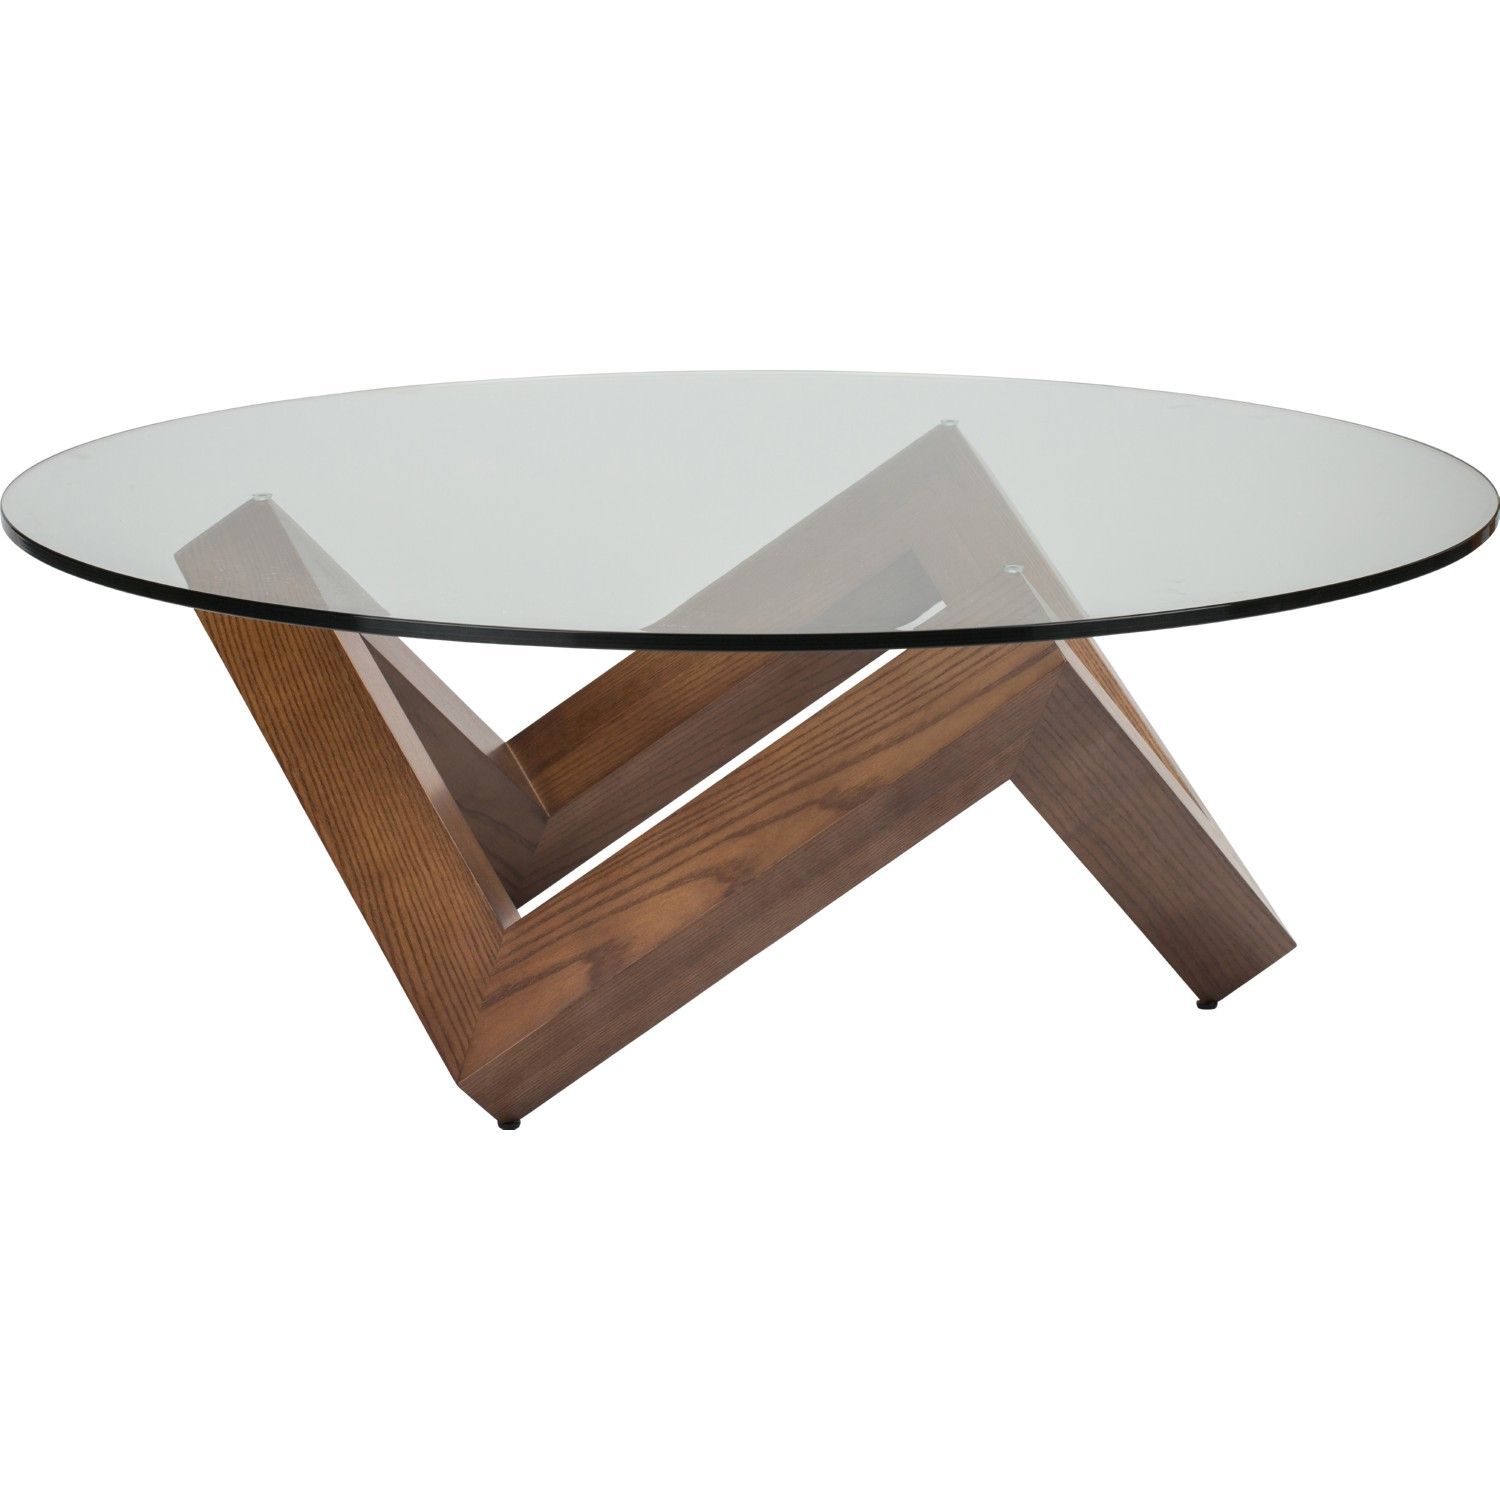 Astounding Como 41 Coffee Table W Round Clear Glass Top On Geometric Walnut Base By Nuevo Modern Furniture Andrewgaddart Wooden Chair Designs For Living Room Andrewgaddartcom